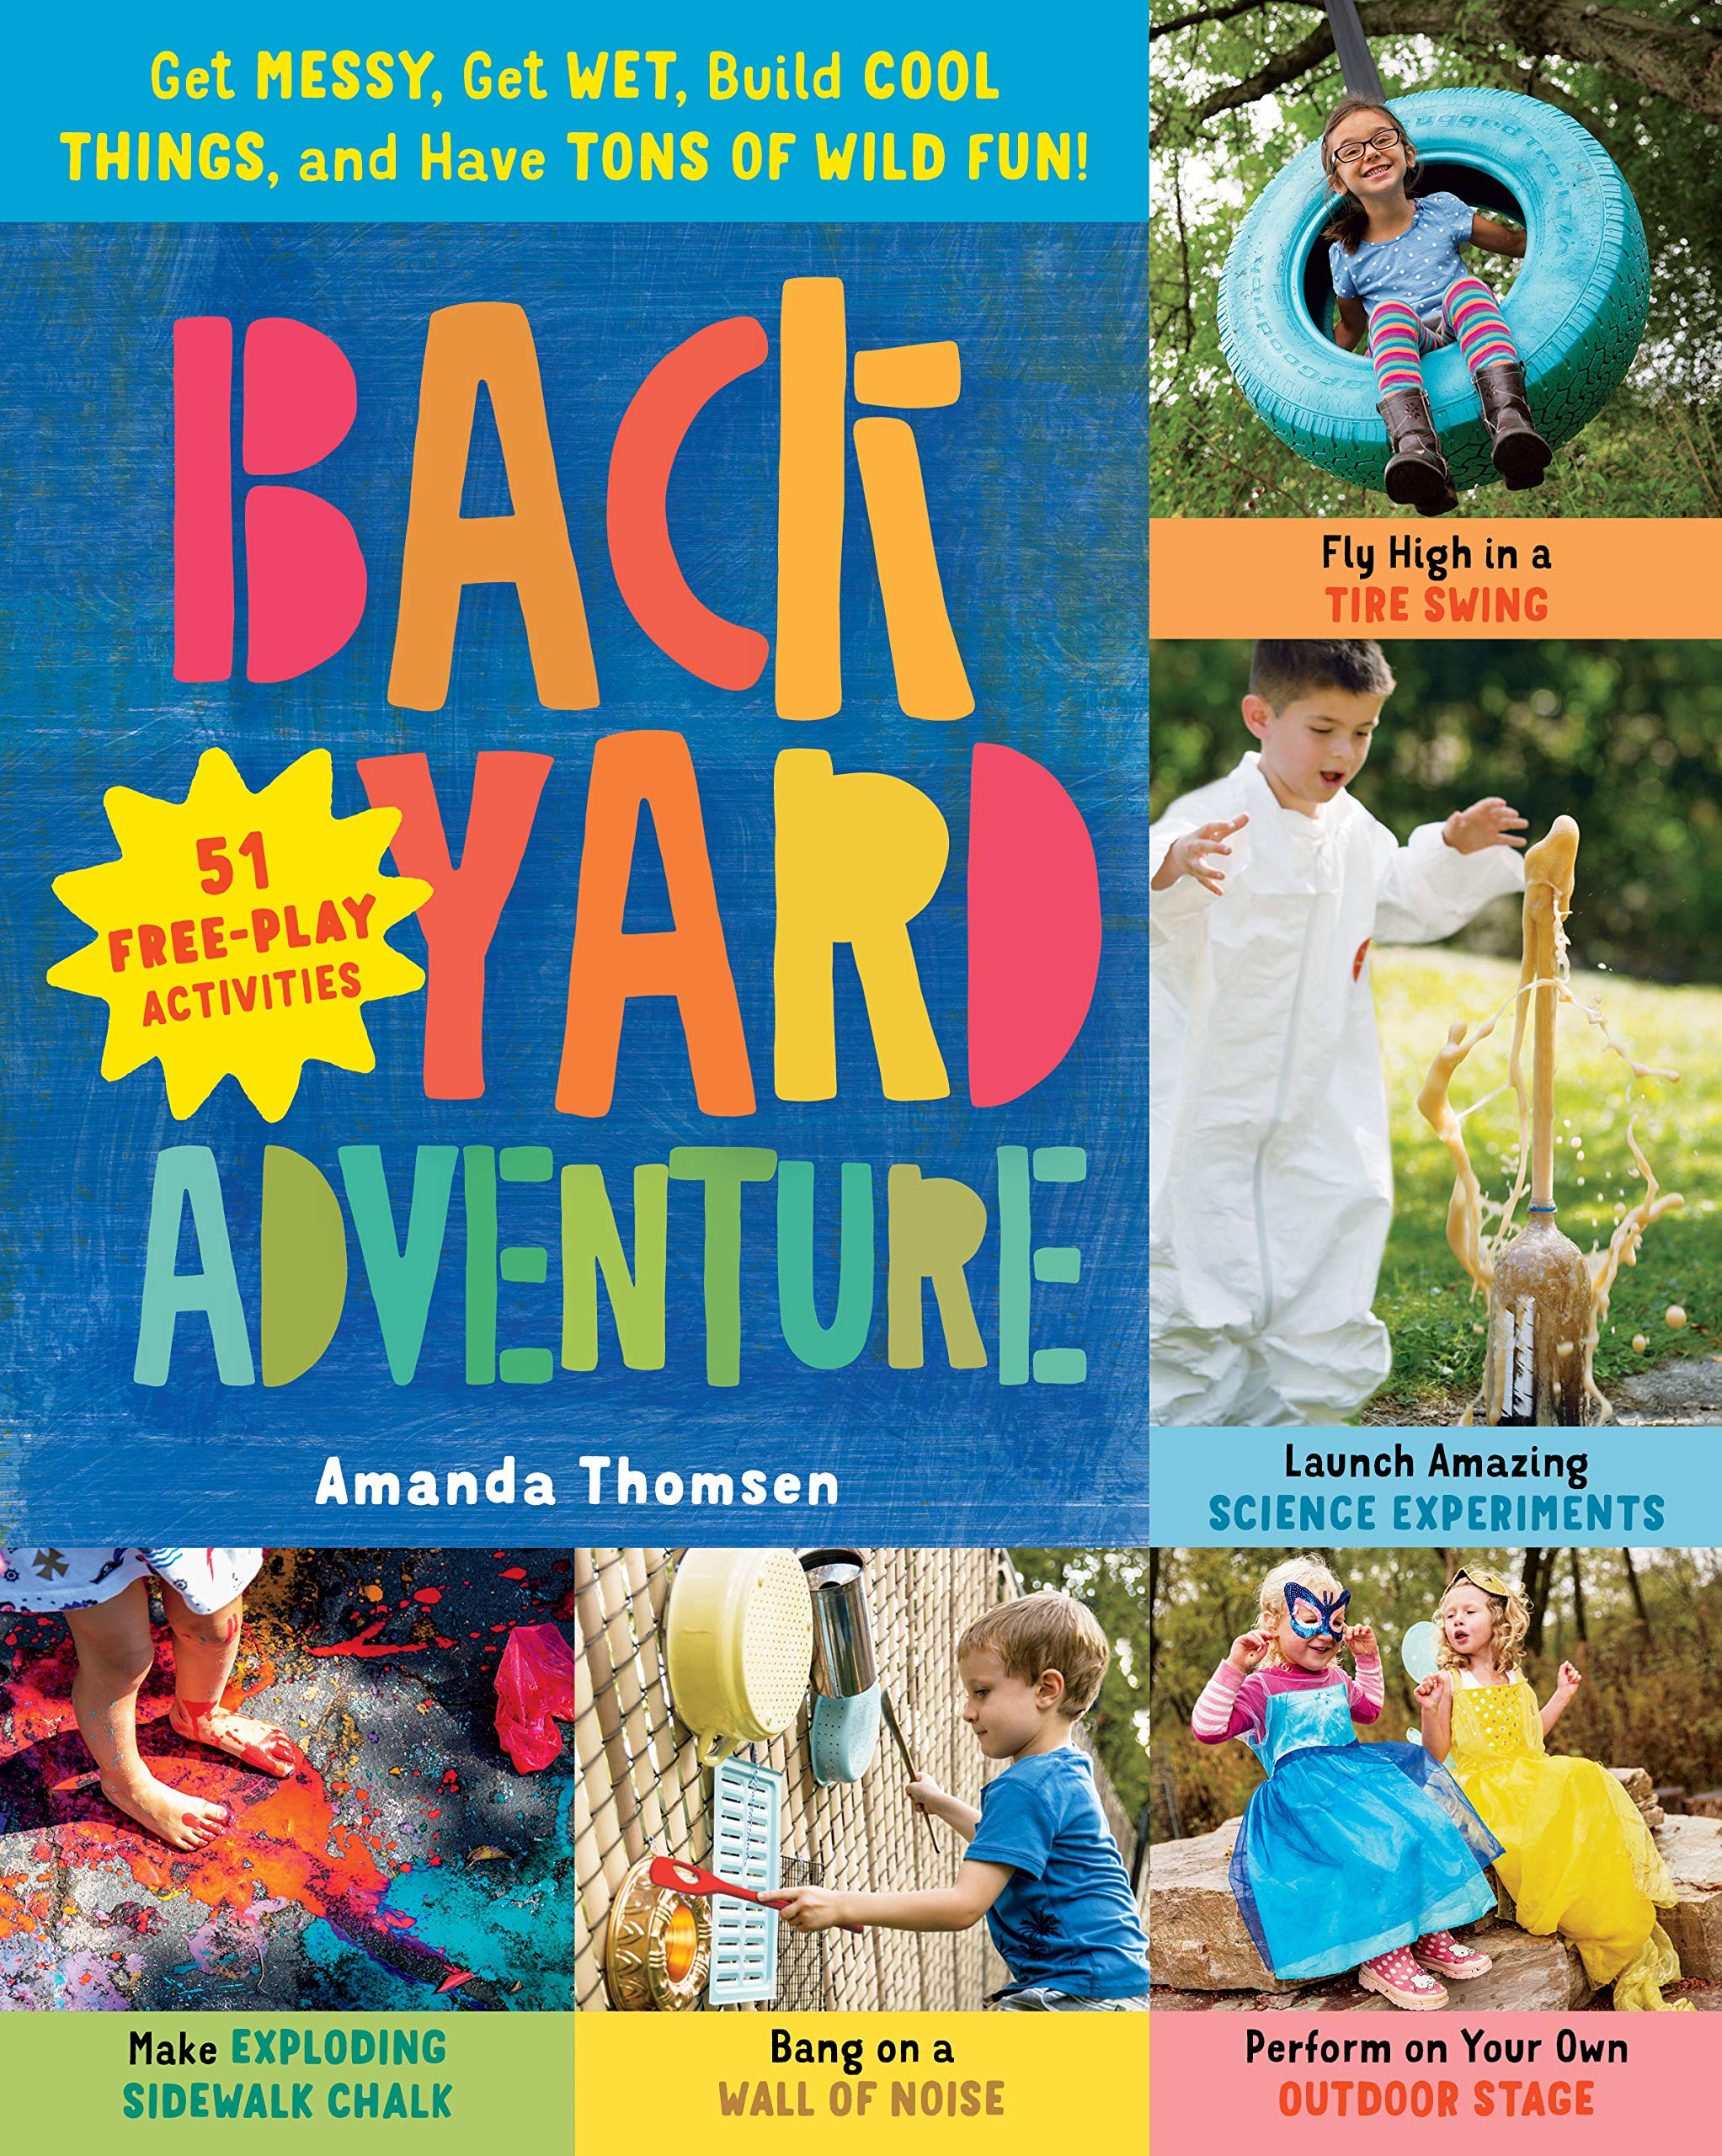 Backyard Adventure Get Messy Get Wet Build Cool Things And Have Tons Of Wild Fun 51 Free Play Activities Thomsen Amanda 9781612129204 Amazon Com Books